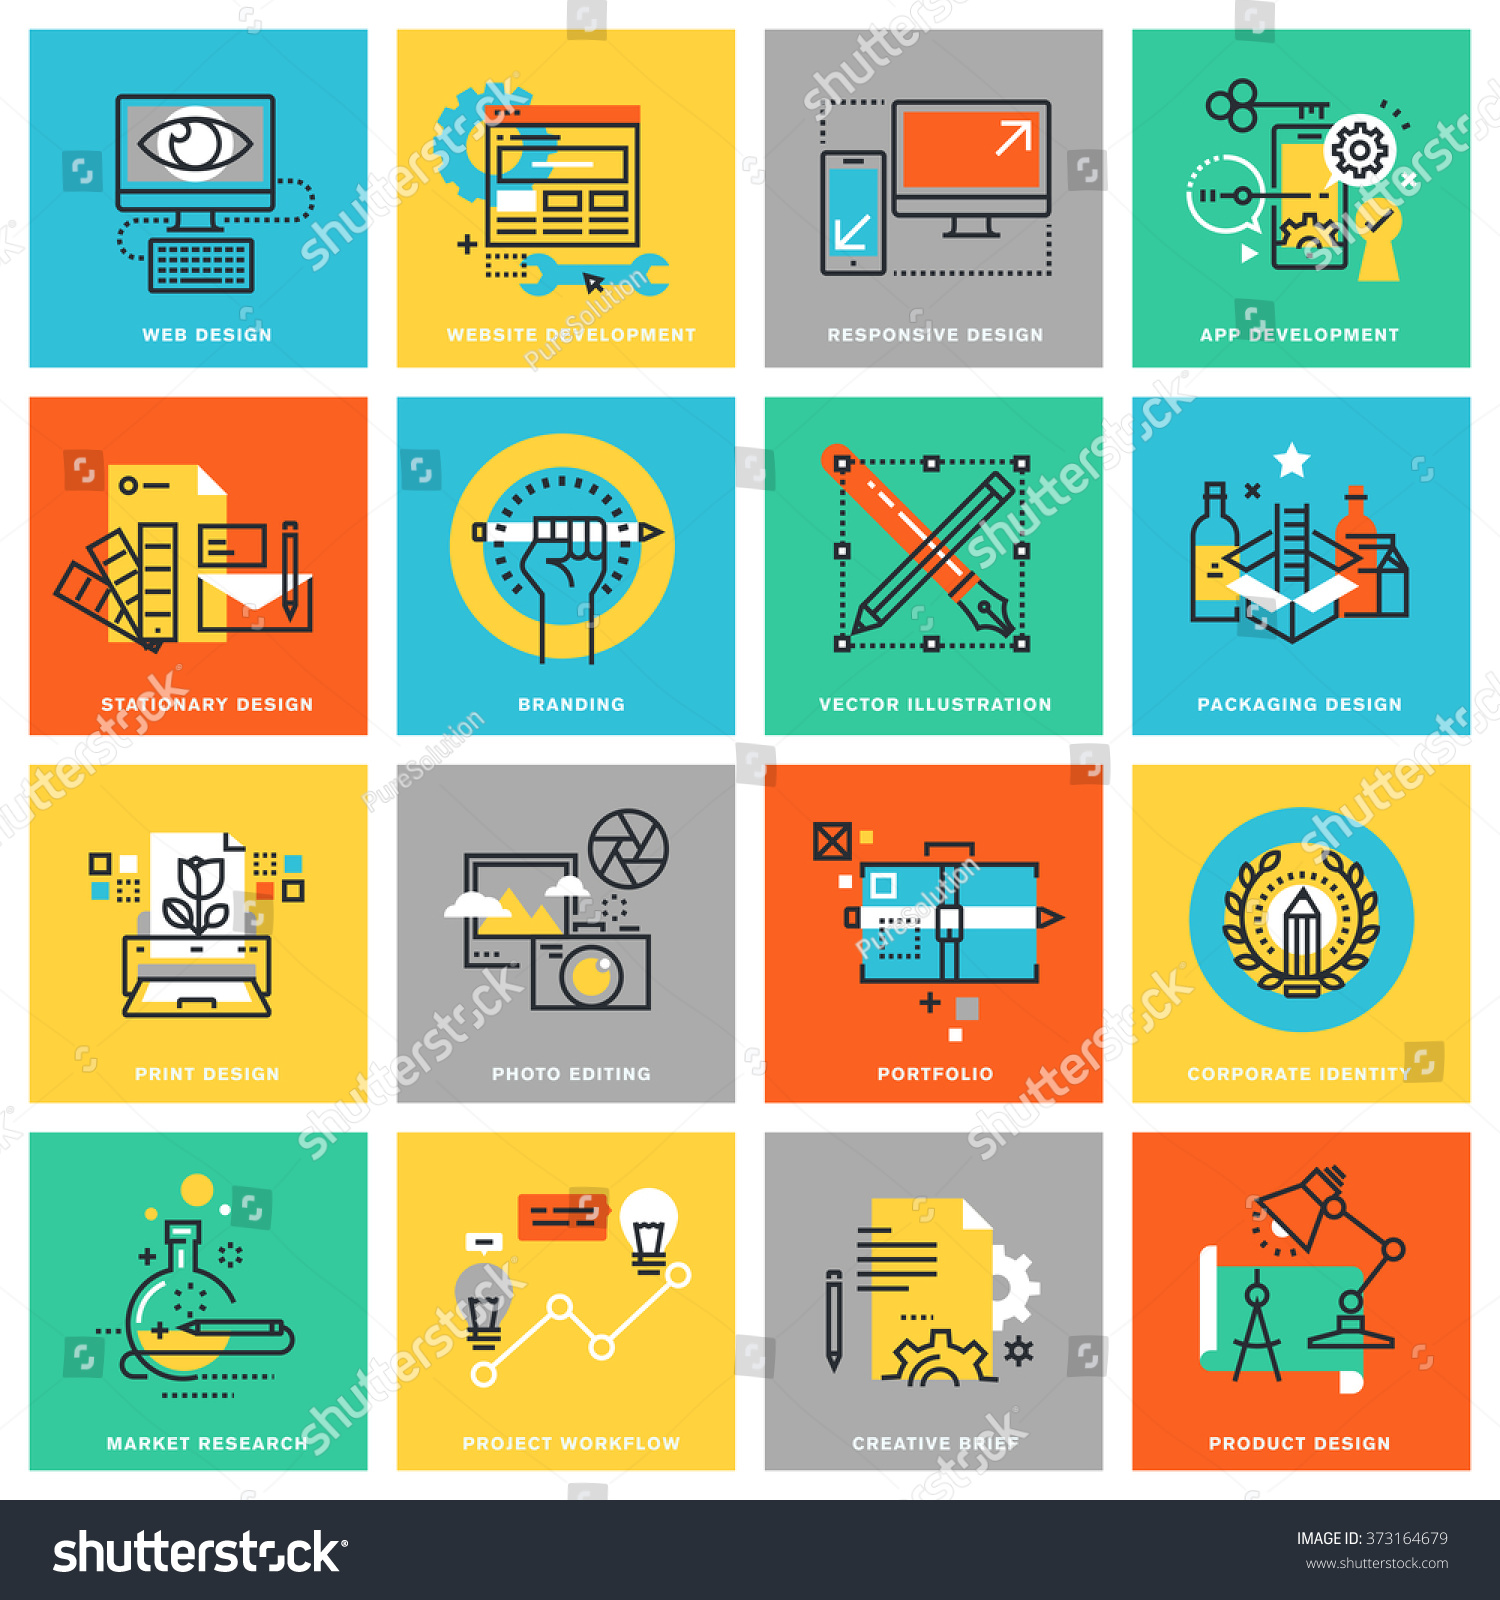 Corporate Graphic Design Modern Thin Line Flat Design Icons Stock Vector Royalty Free